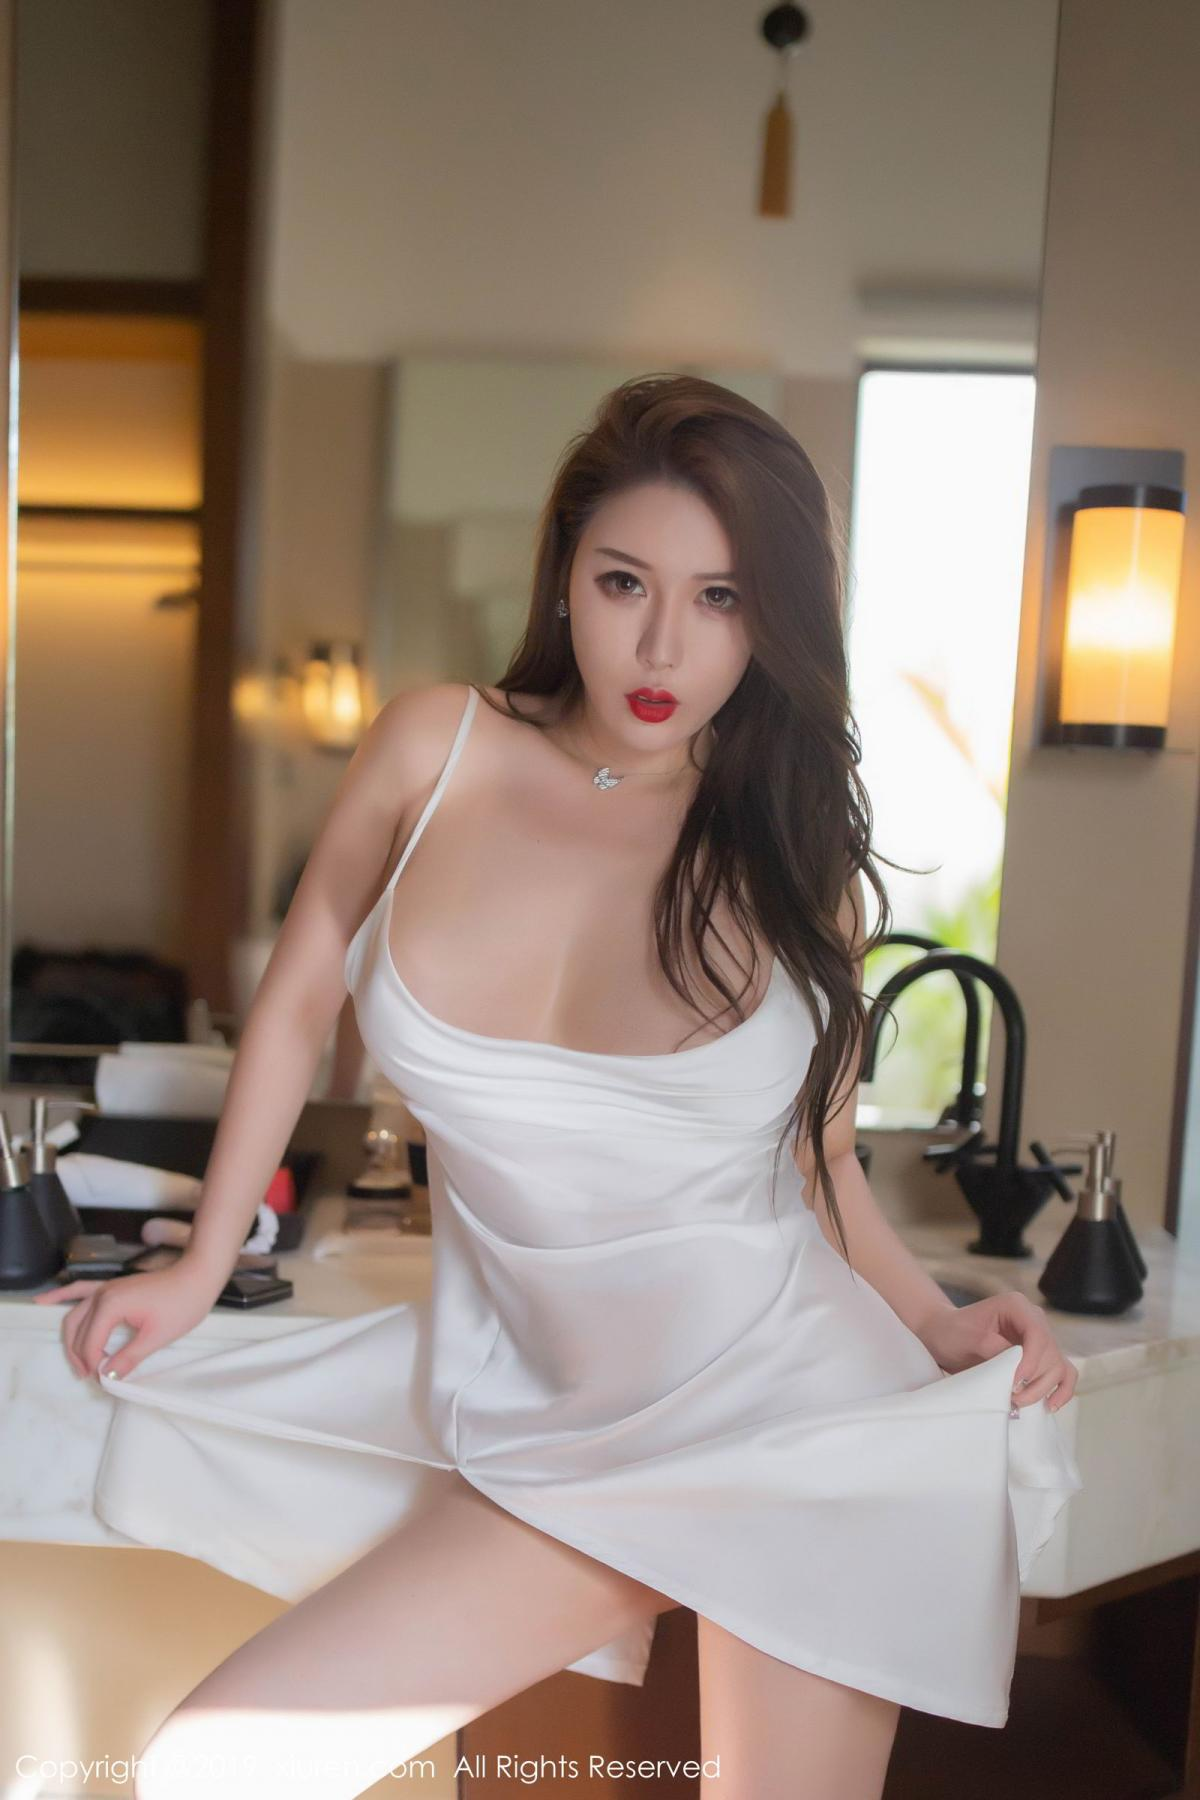 [XiuRen] Vol.1510 Egg Younisi 23P, Bathroom, Big Booty, Egg Younisi, Wet, Xiuren